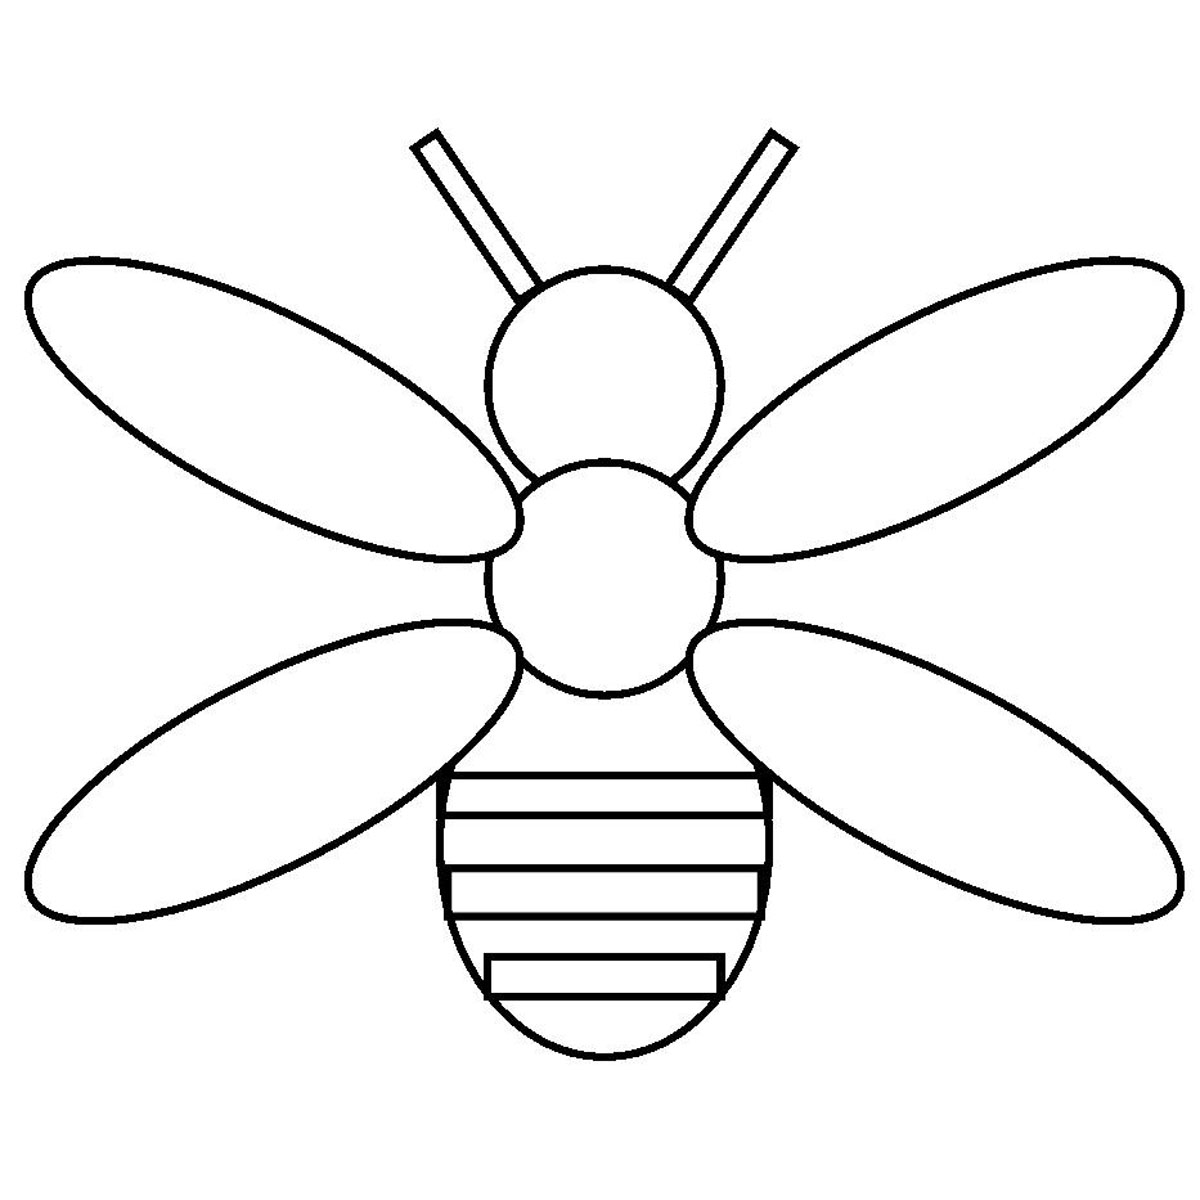 Firefly clipart outline. Free black and white